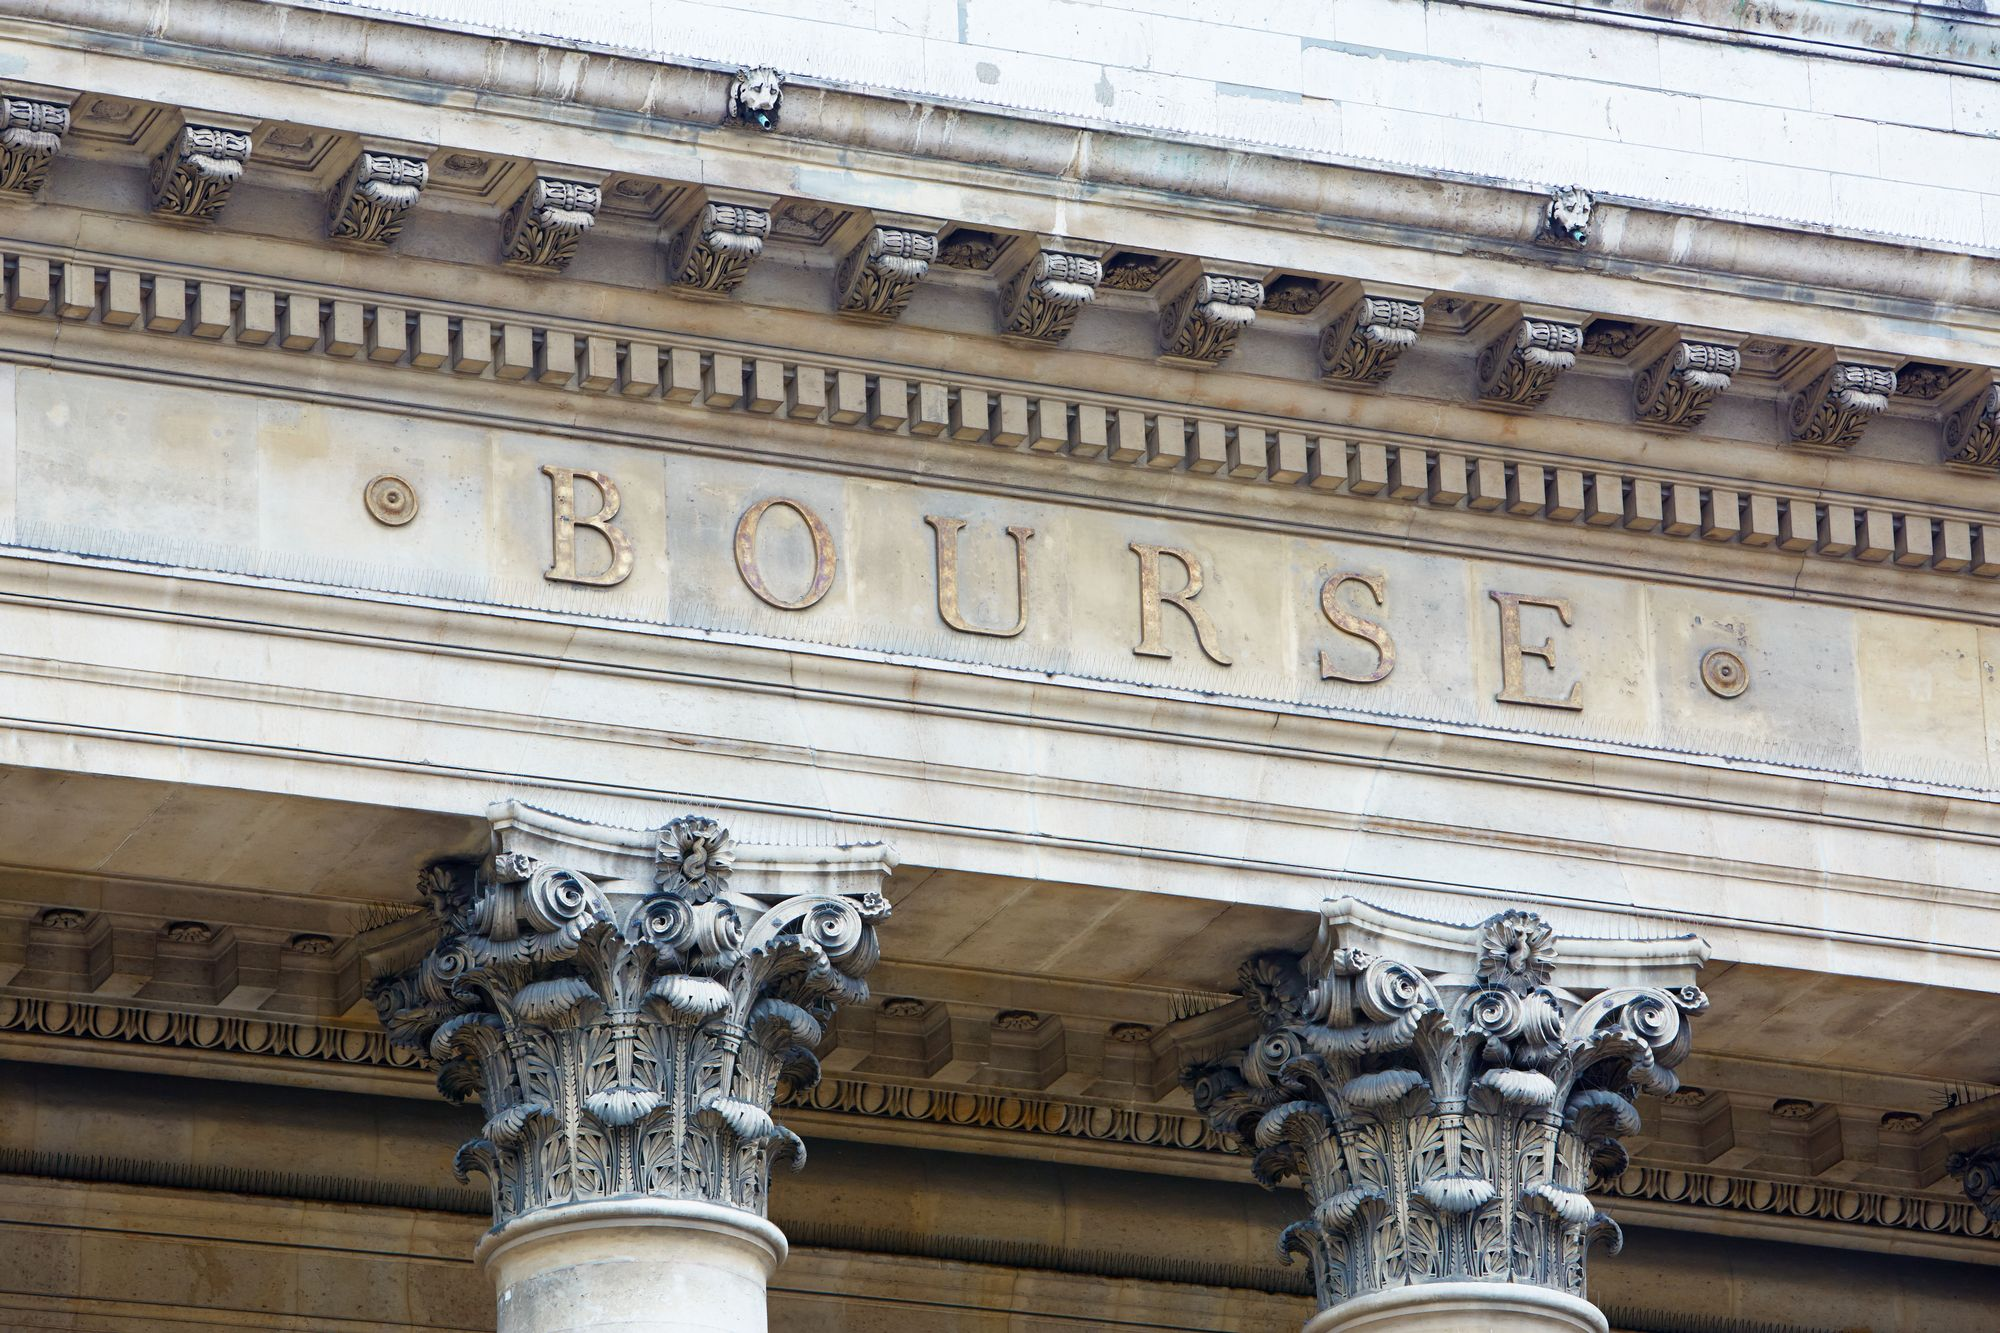 Le bâtiment de la Bourse de Paris.